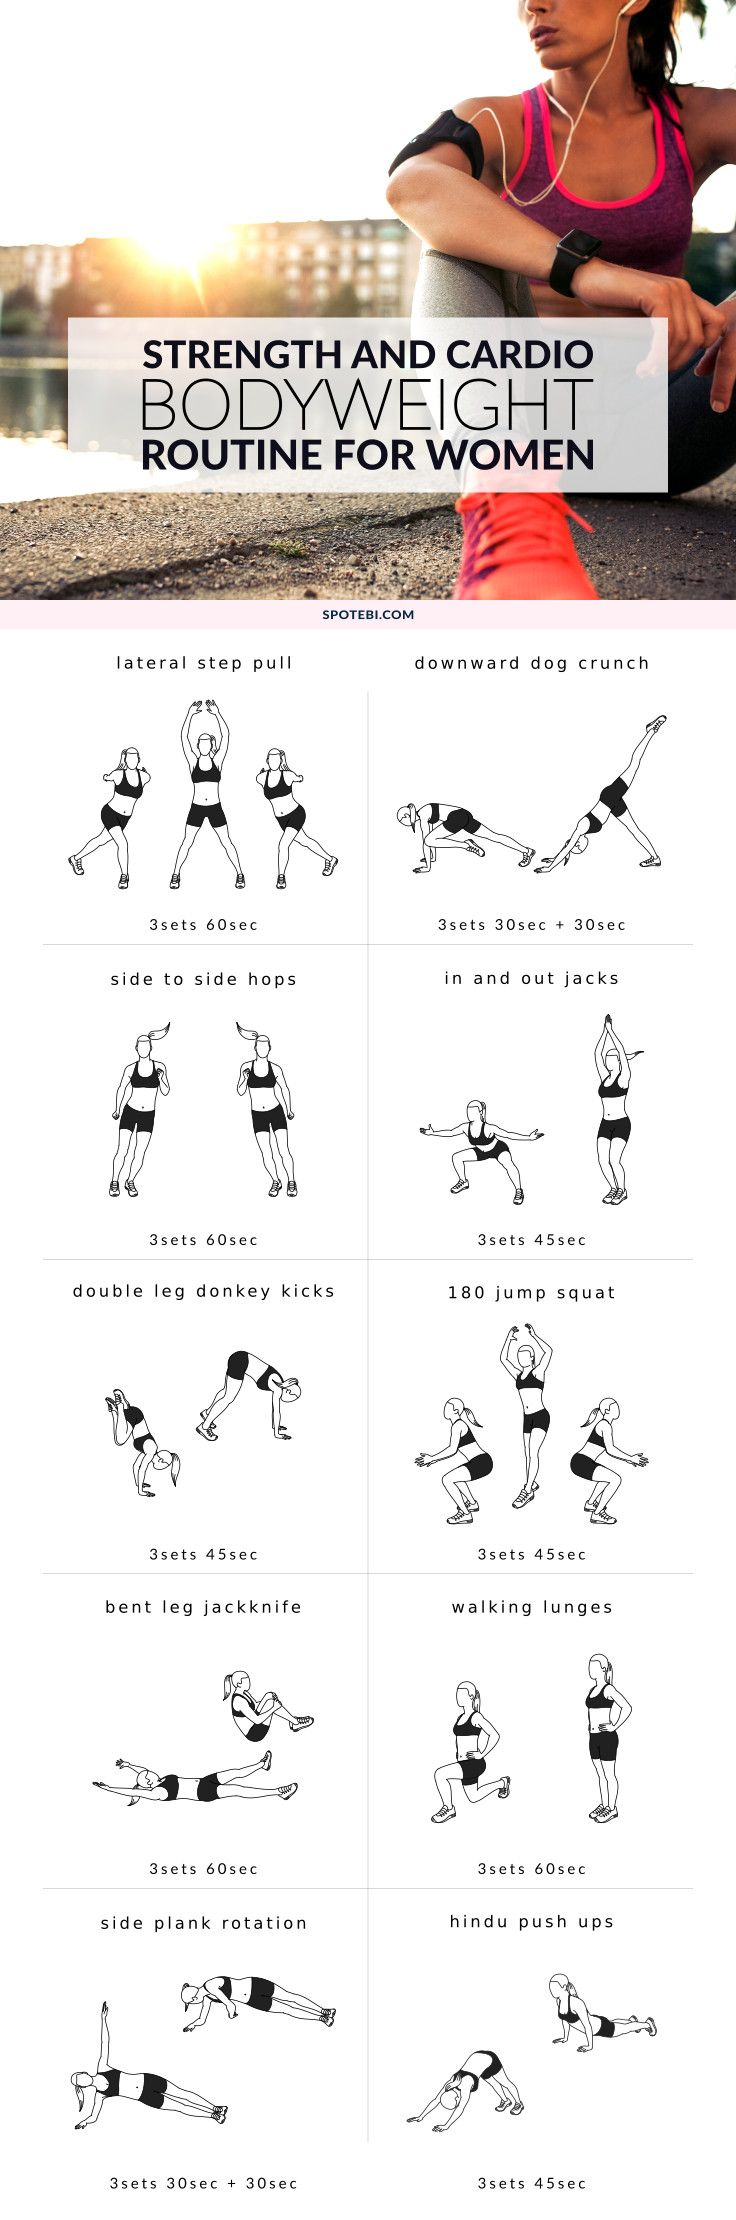 Strengthen your whole body, reduce stress and boost your calorie burn at home with this strength and cardio bodyweight routine for women. If you're bored with your workouts, or just want to mix things up, this no-equipment circuit is the perfect choice! https://www.spotebi.com/workout-routines/strength-cardio-bodyweight-routine/